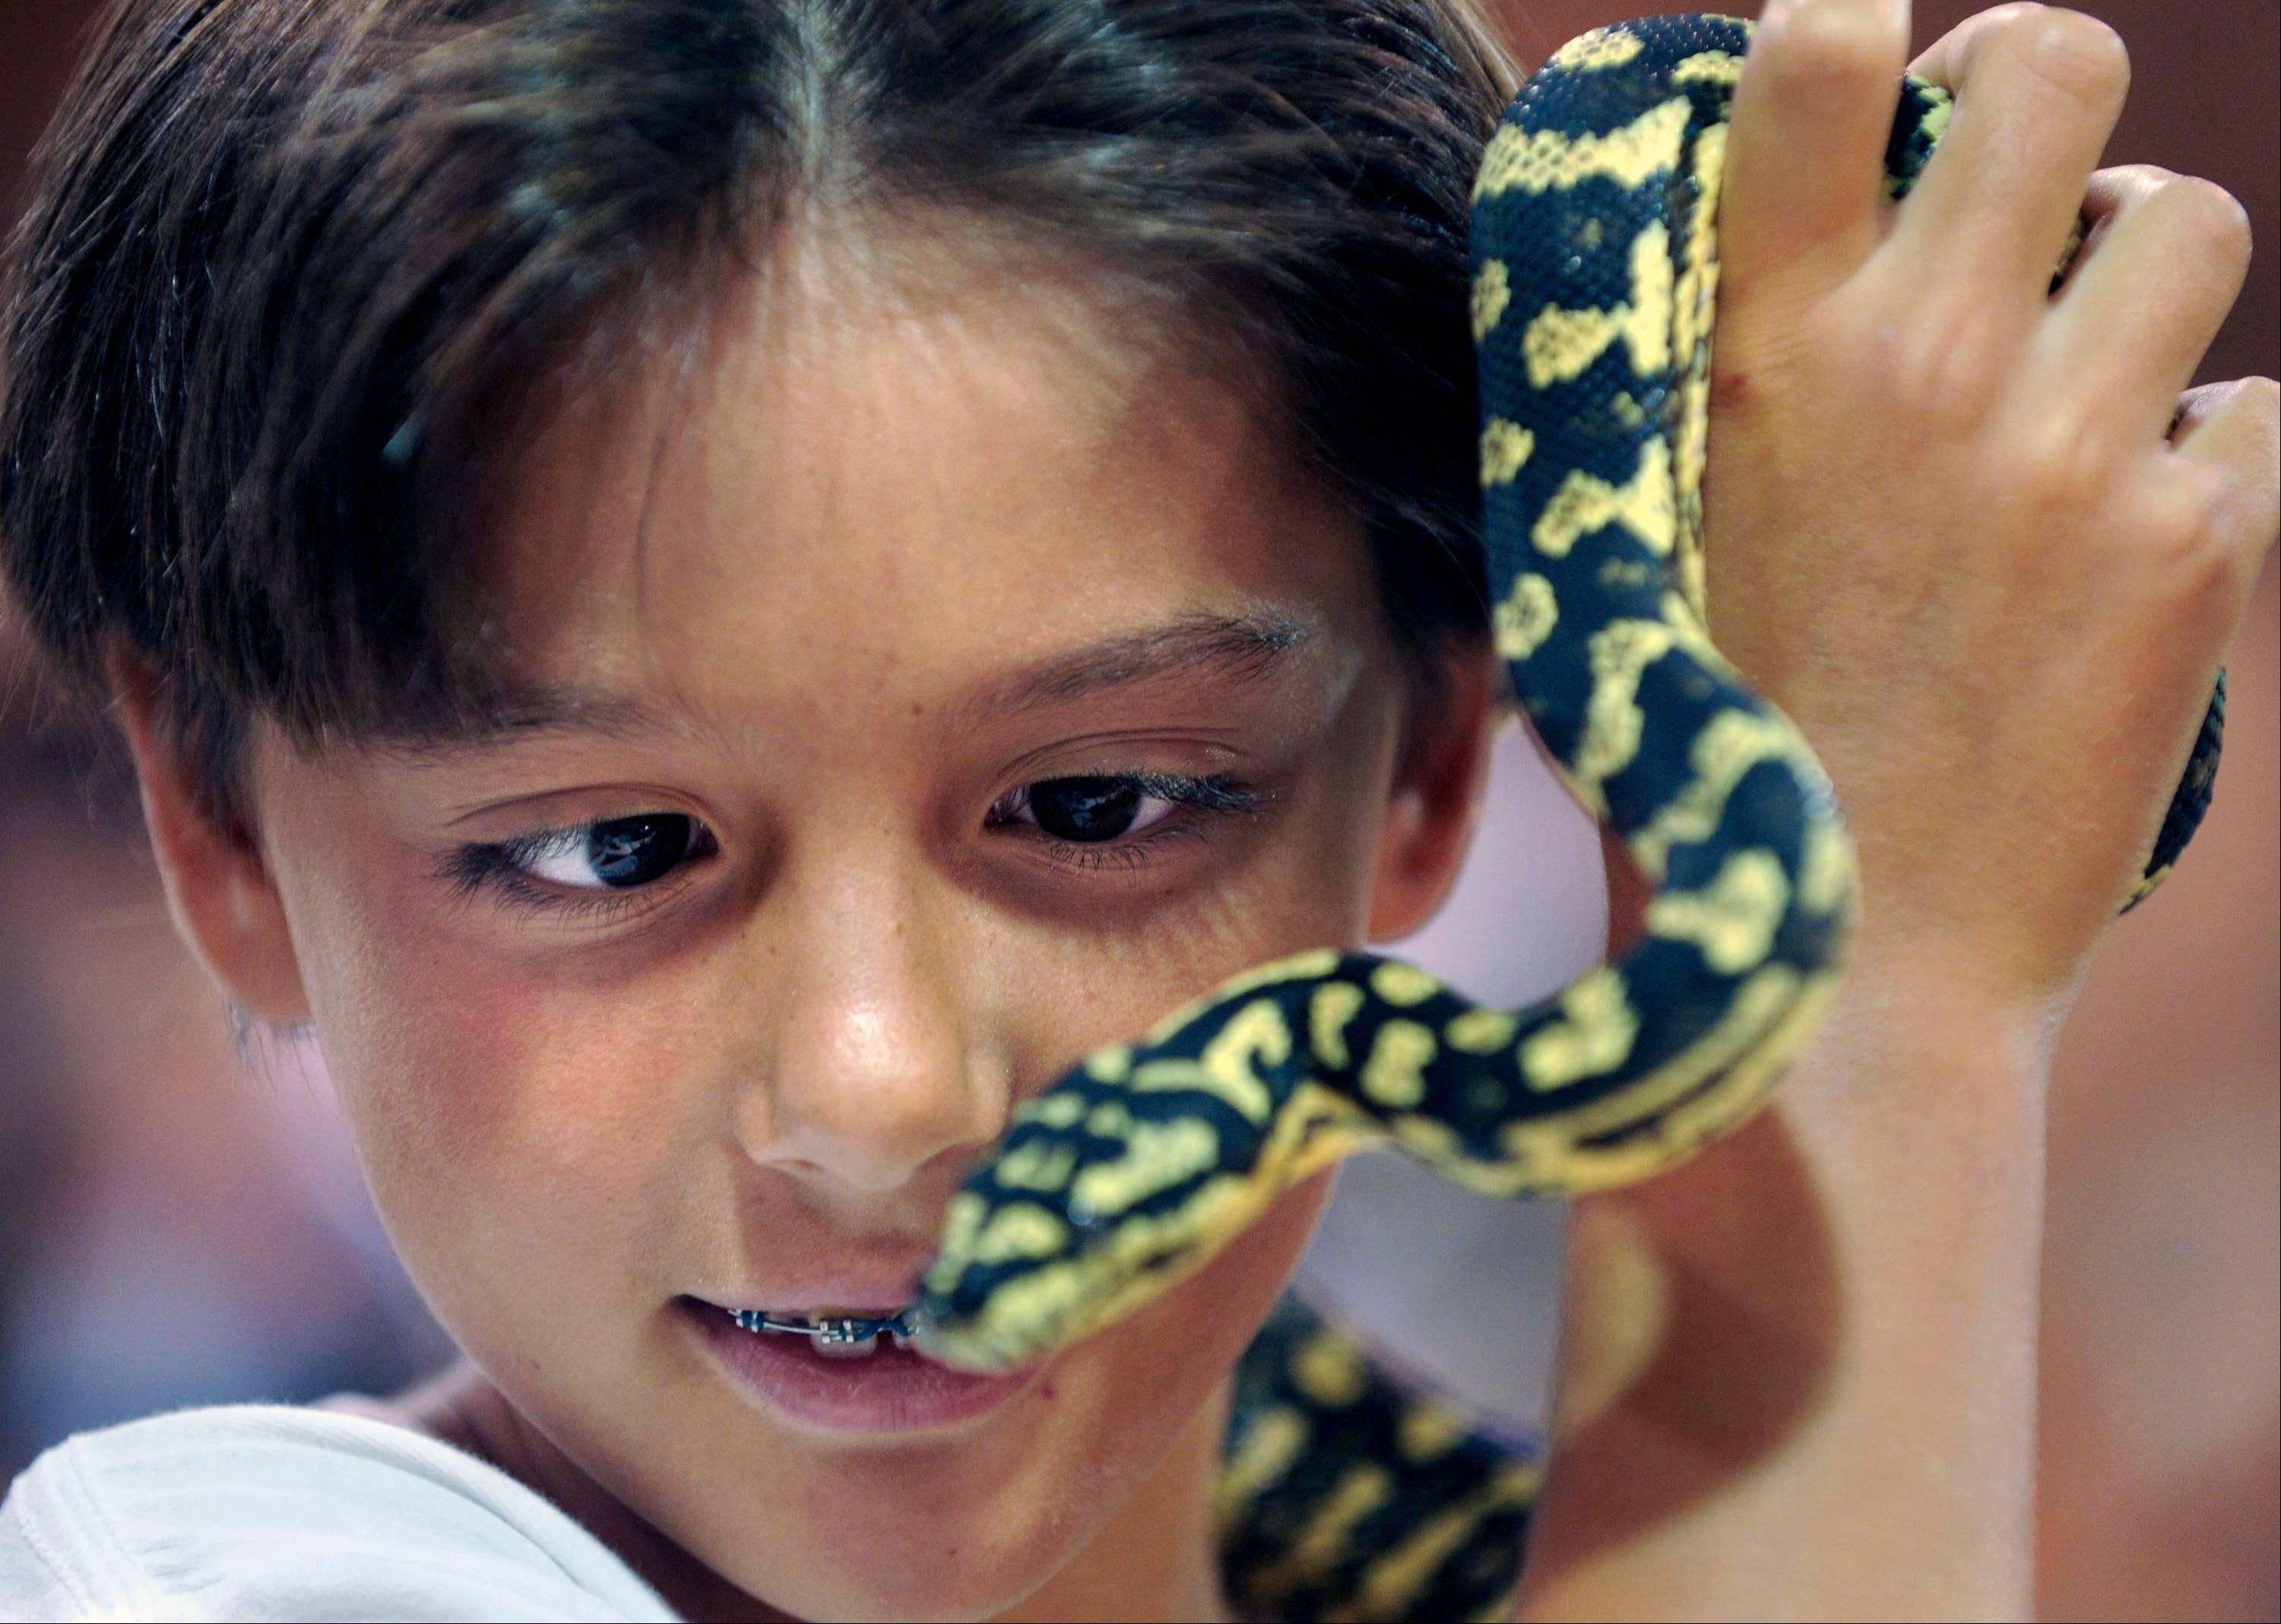 Get a close look at snakes, lizards, turtles and other exotic pets this weekend in St. Charles, when Repticon returns to the Kane County Fairgrounds.